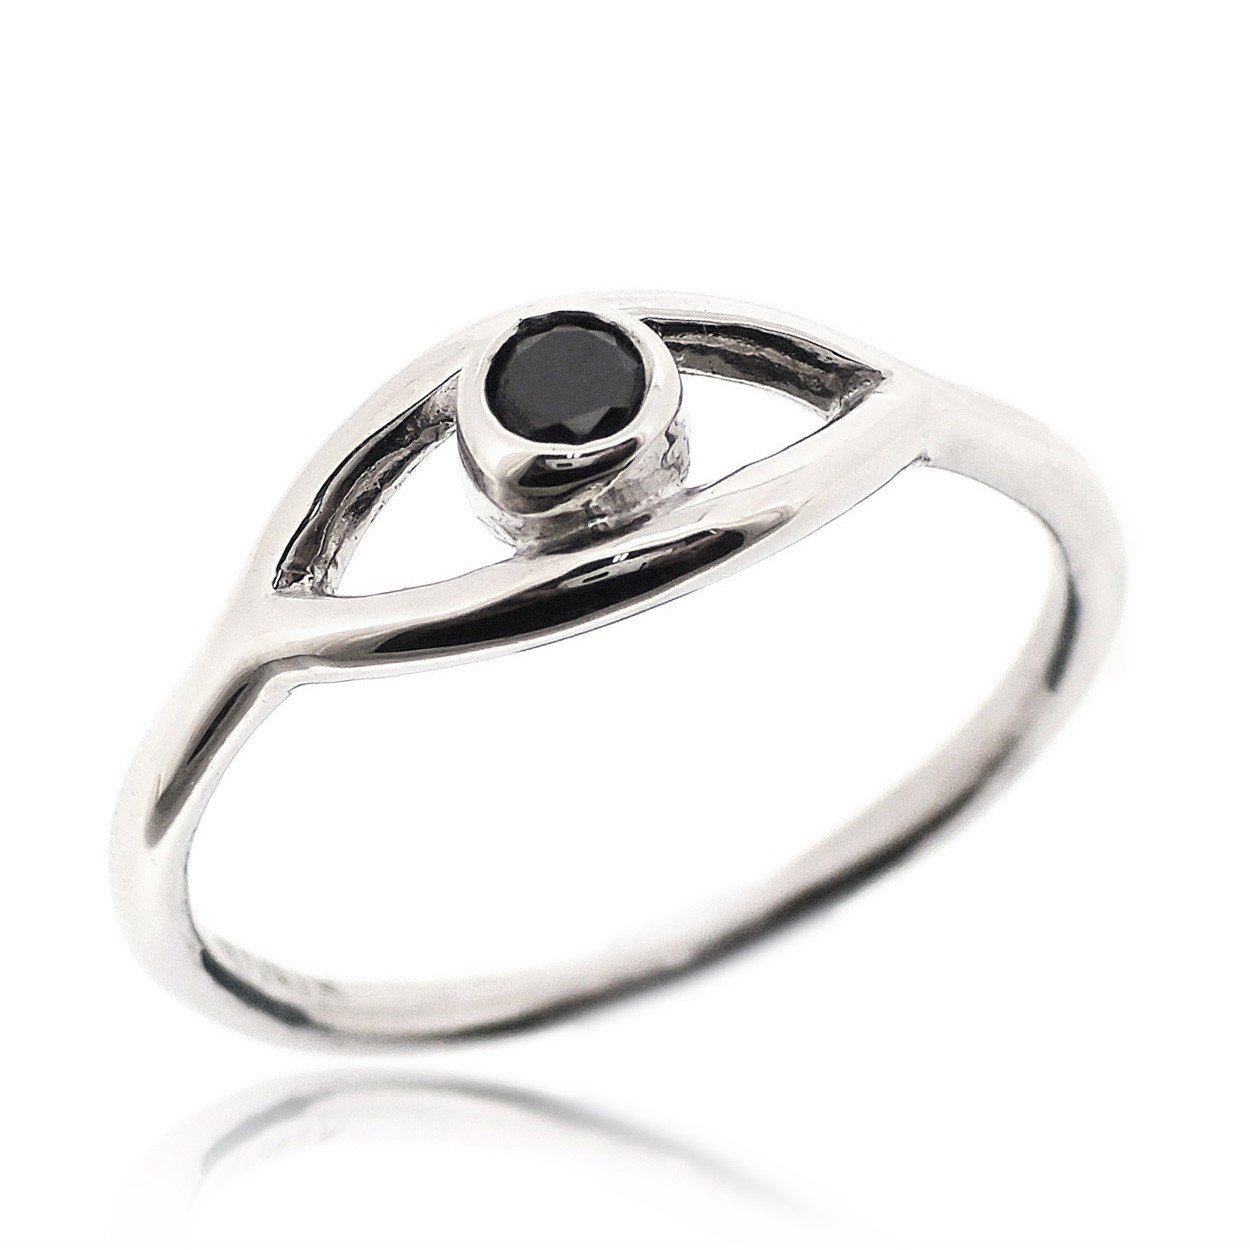 SOVATS Evil Eye Lucky Jewelry Protection Ring For Women Set With Black Cubic Zirconia 925 Sterling Silver Rhodium Plated - Simple, Stylish &Trendy Nickel Free Ring, Size 5